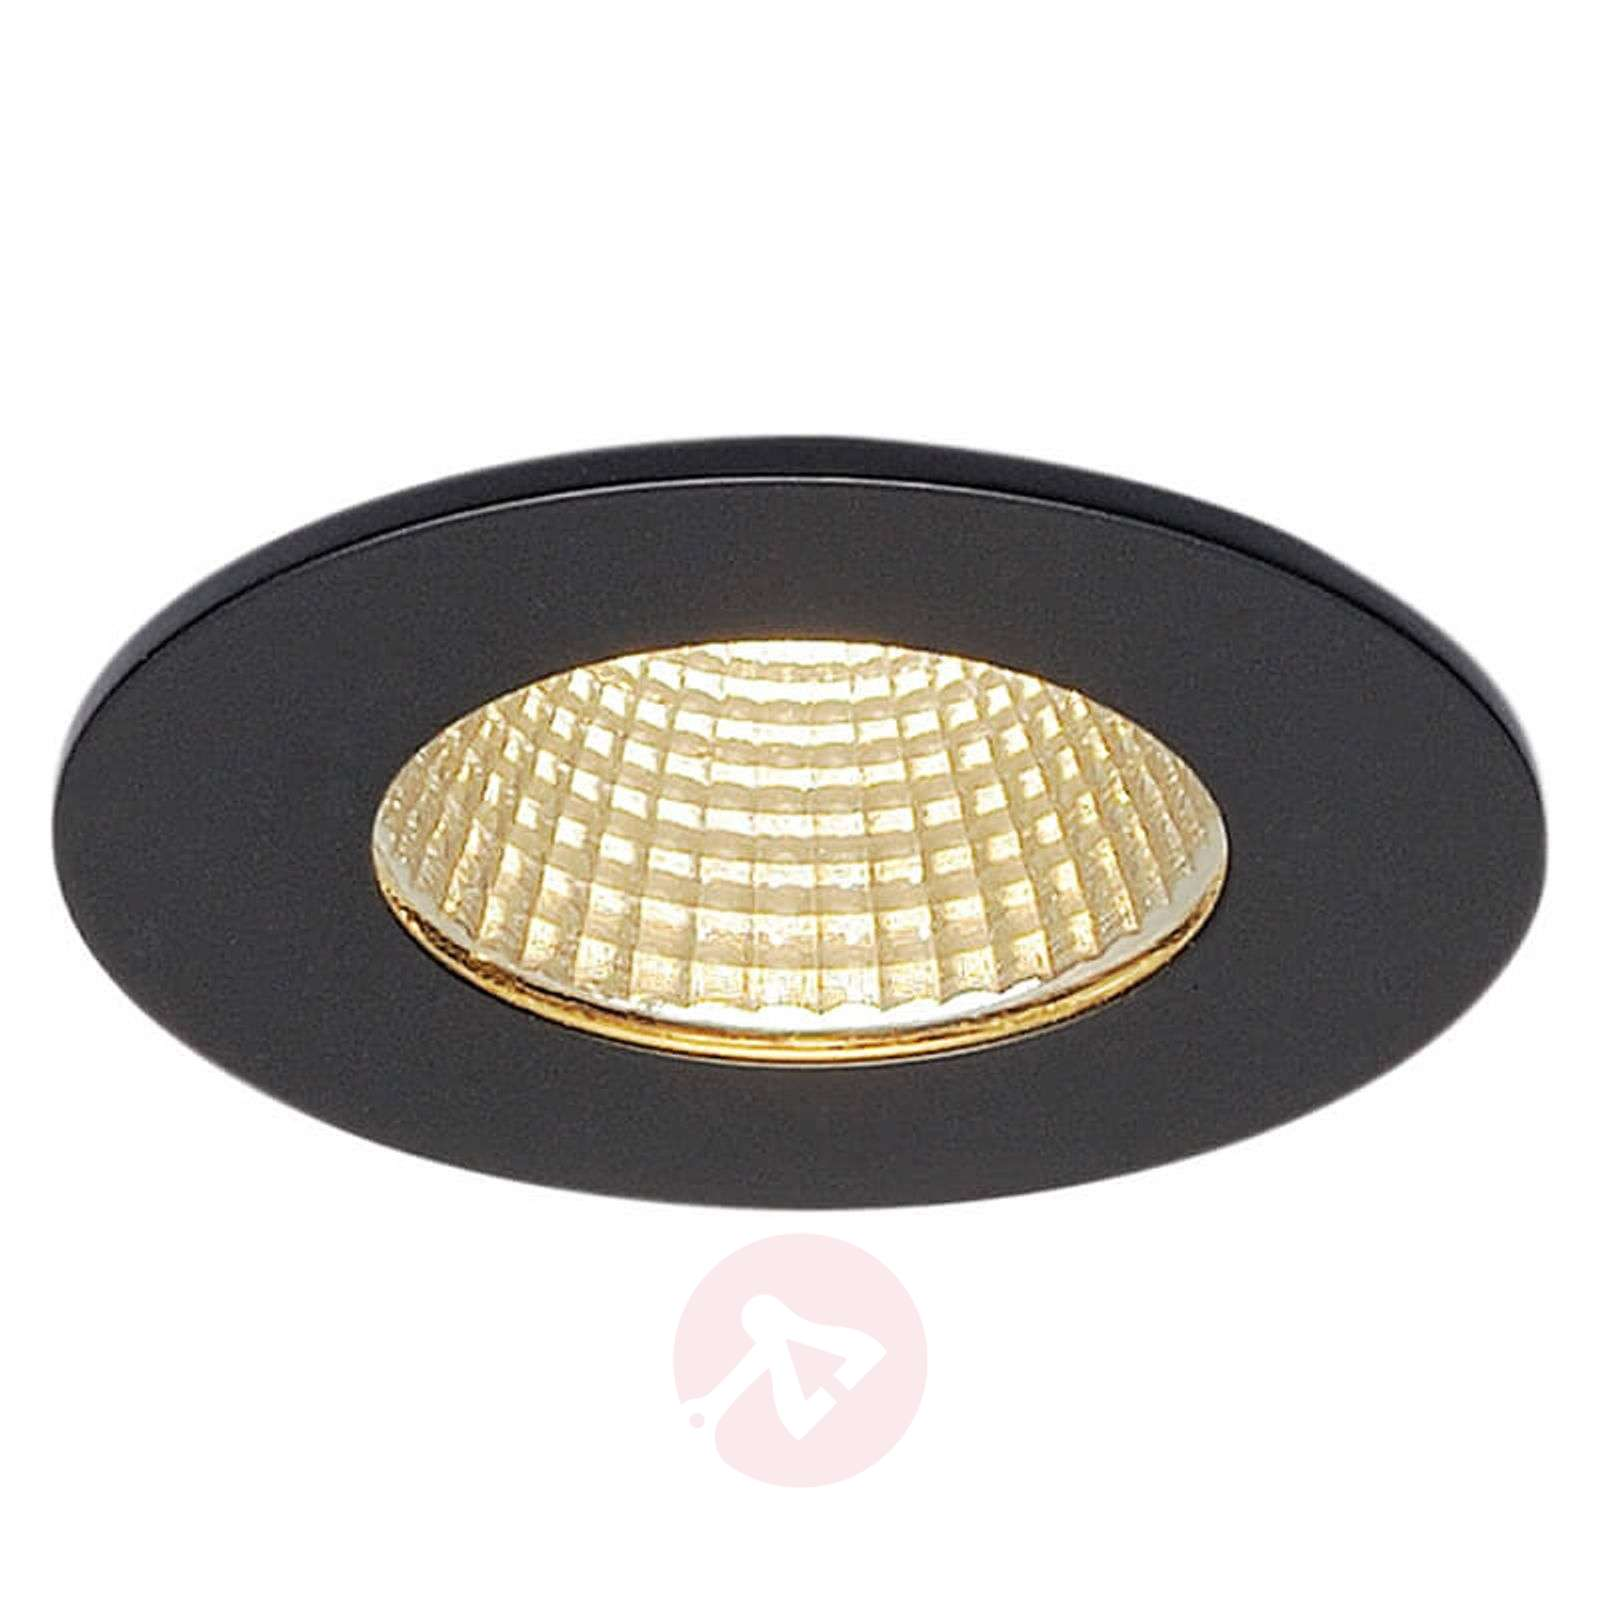 SLV Patta-I lampe encastrable LED ronde, noir mat-5504792-01